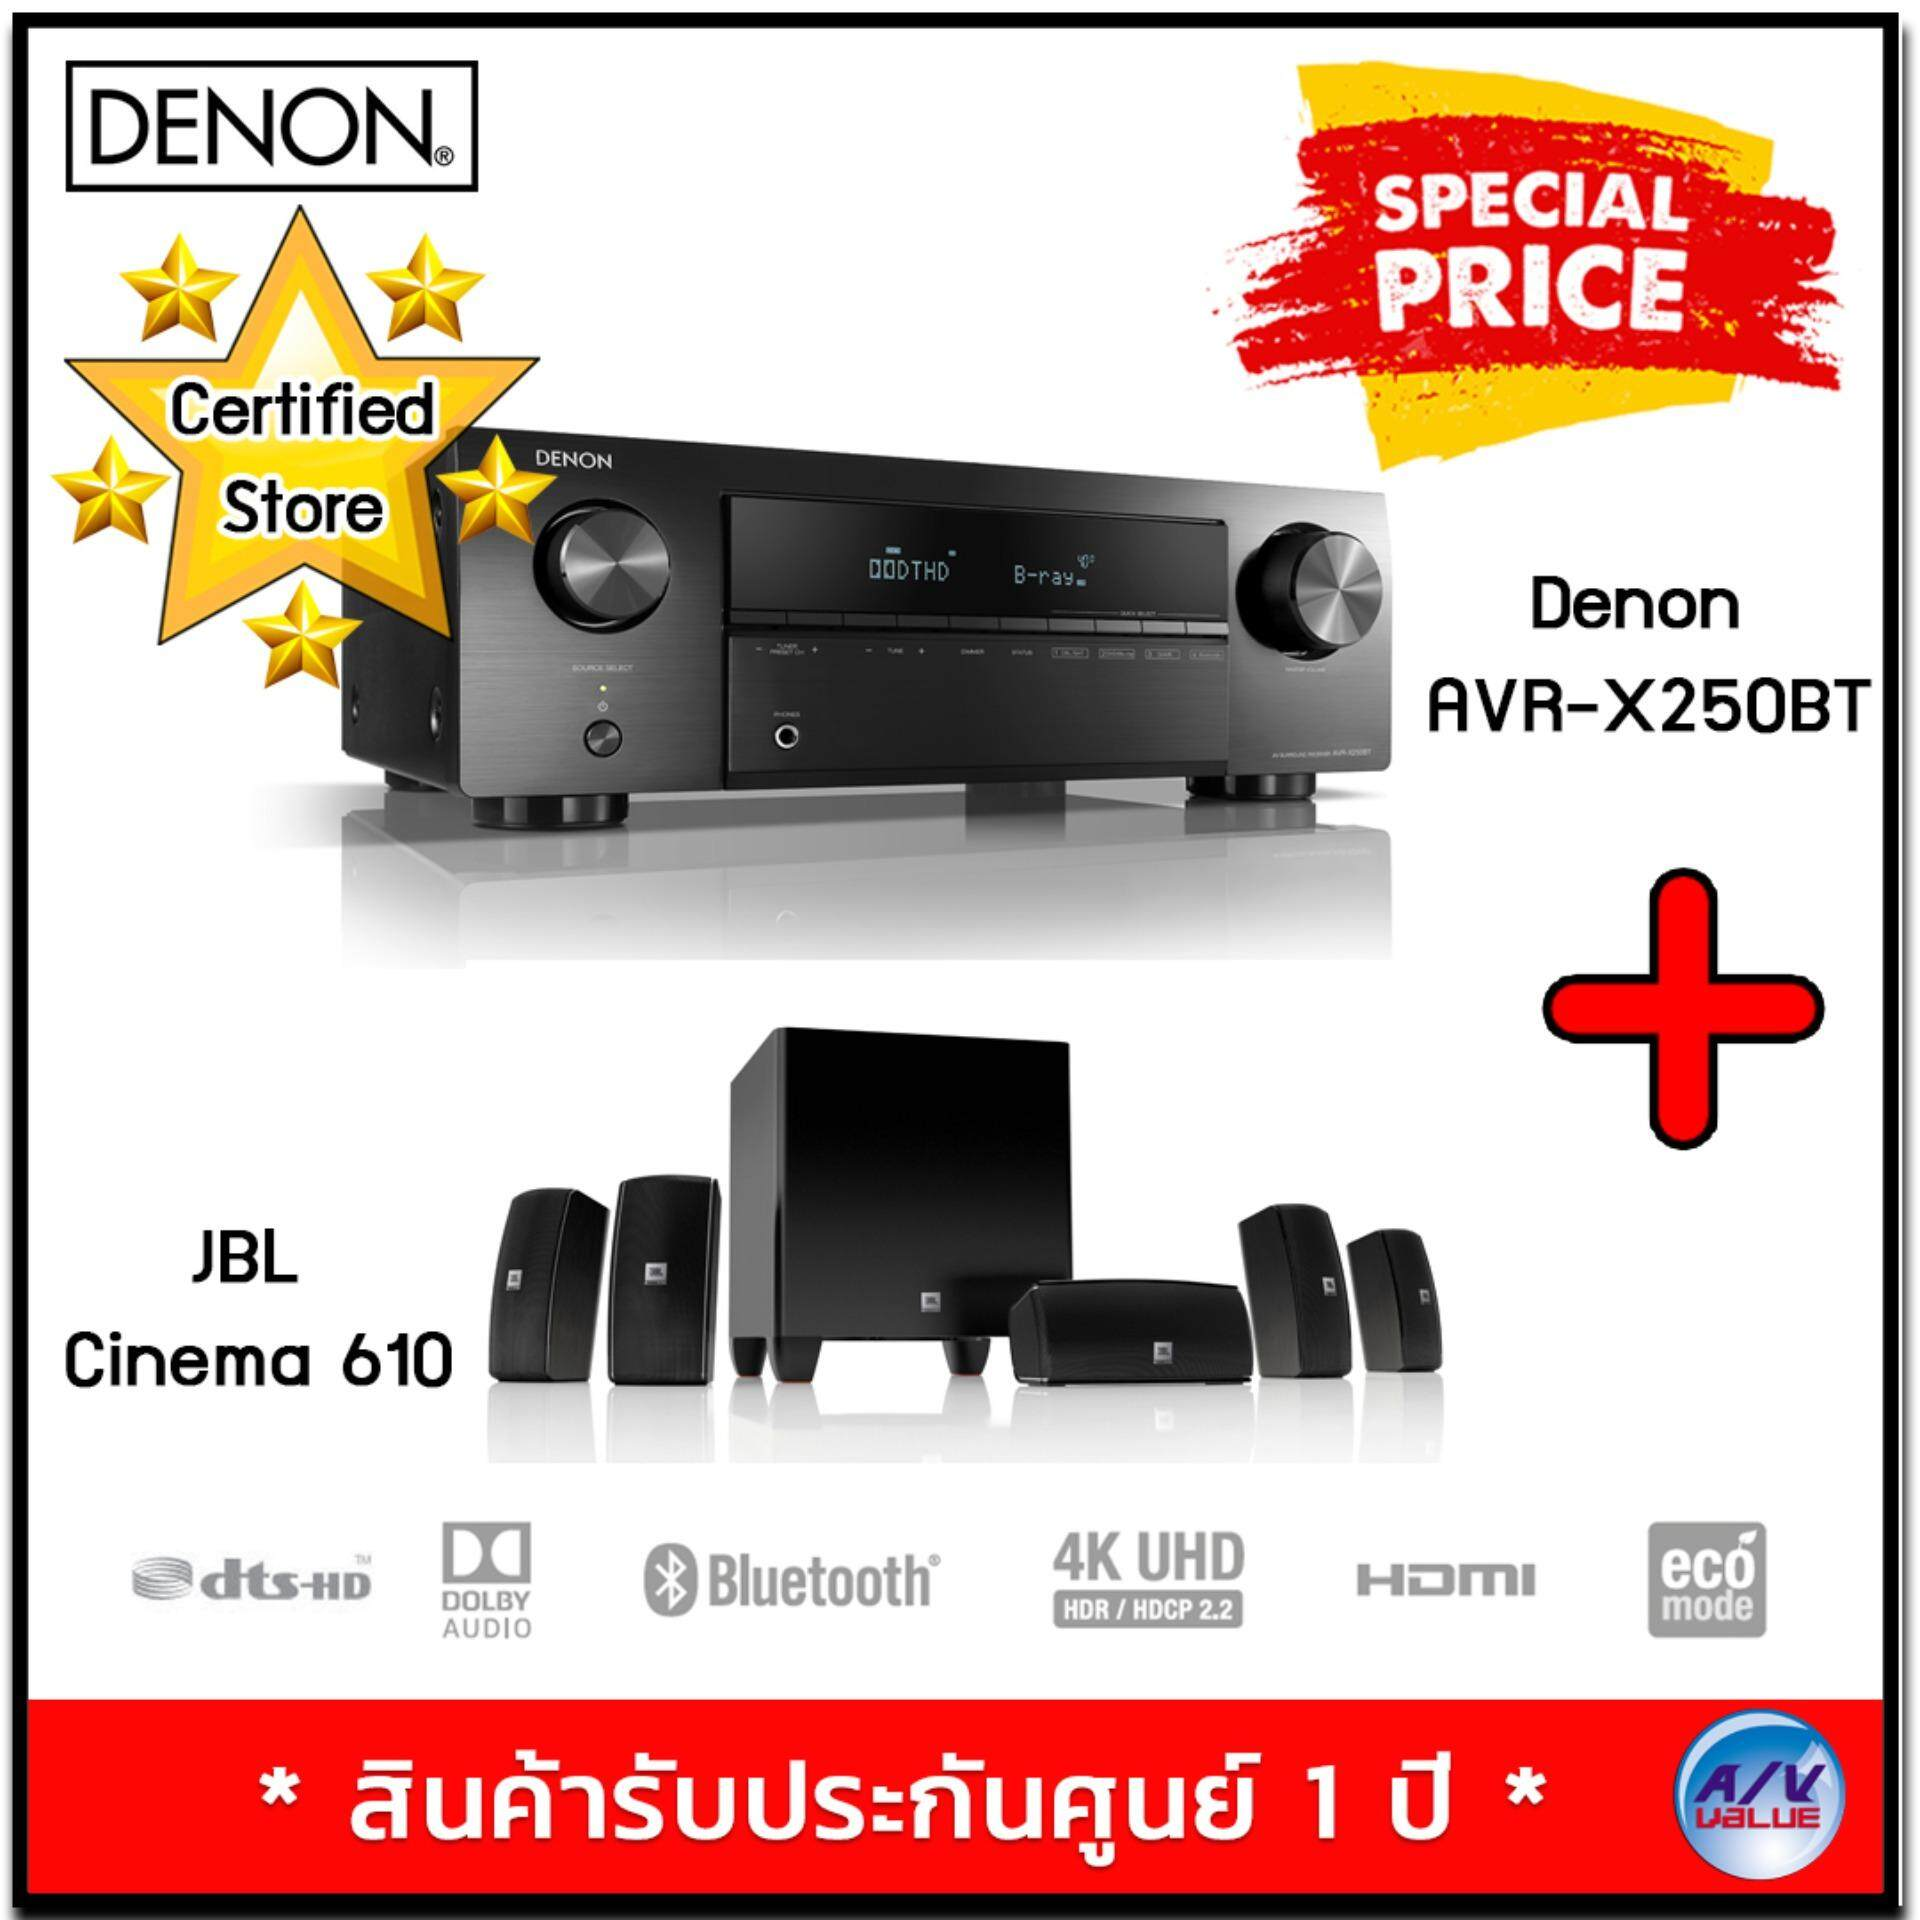 การใช้งาน  จันทบุรี Denon AVR-X250BT 5.1 Ch. 4K Ultra HD AV Receiver with Bluetooth + JBL Cinema 610